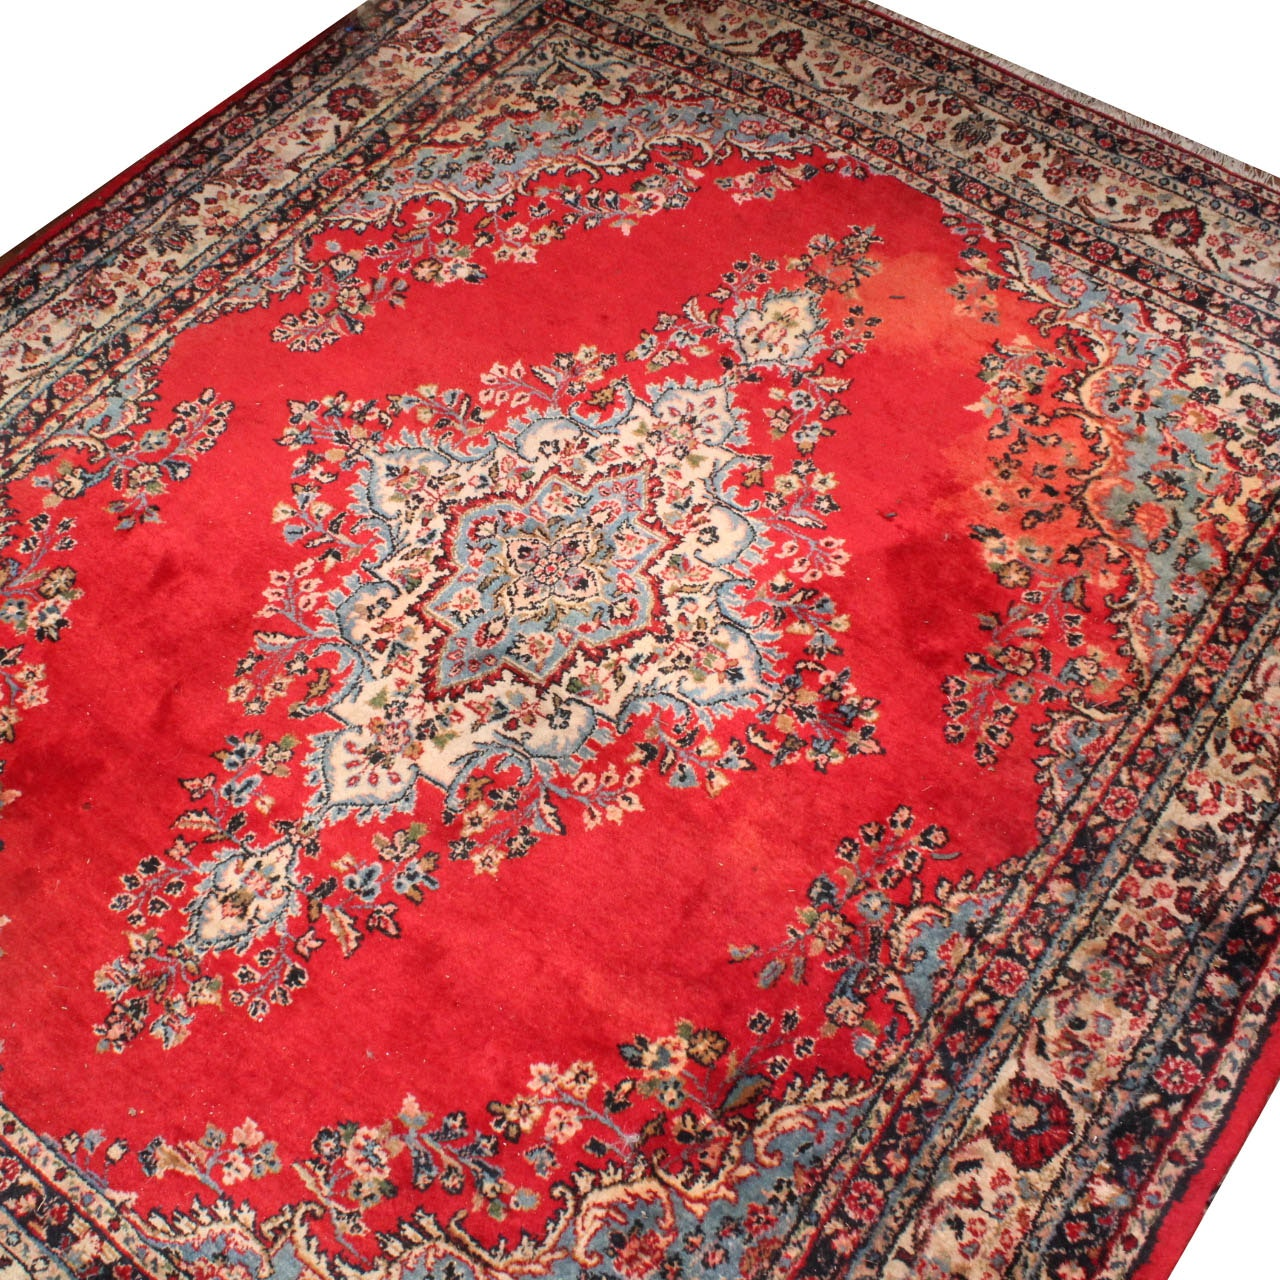 Hand Knotted Indo-Persian Room Size Area Rug